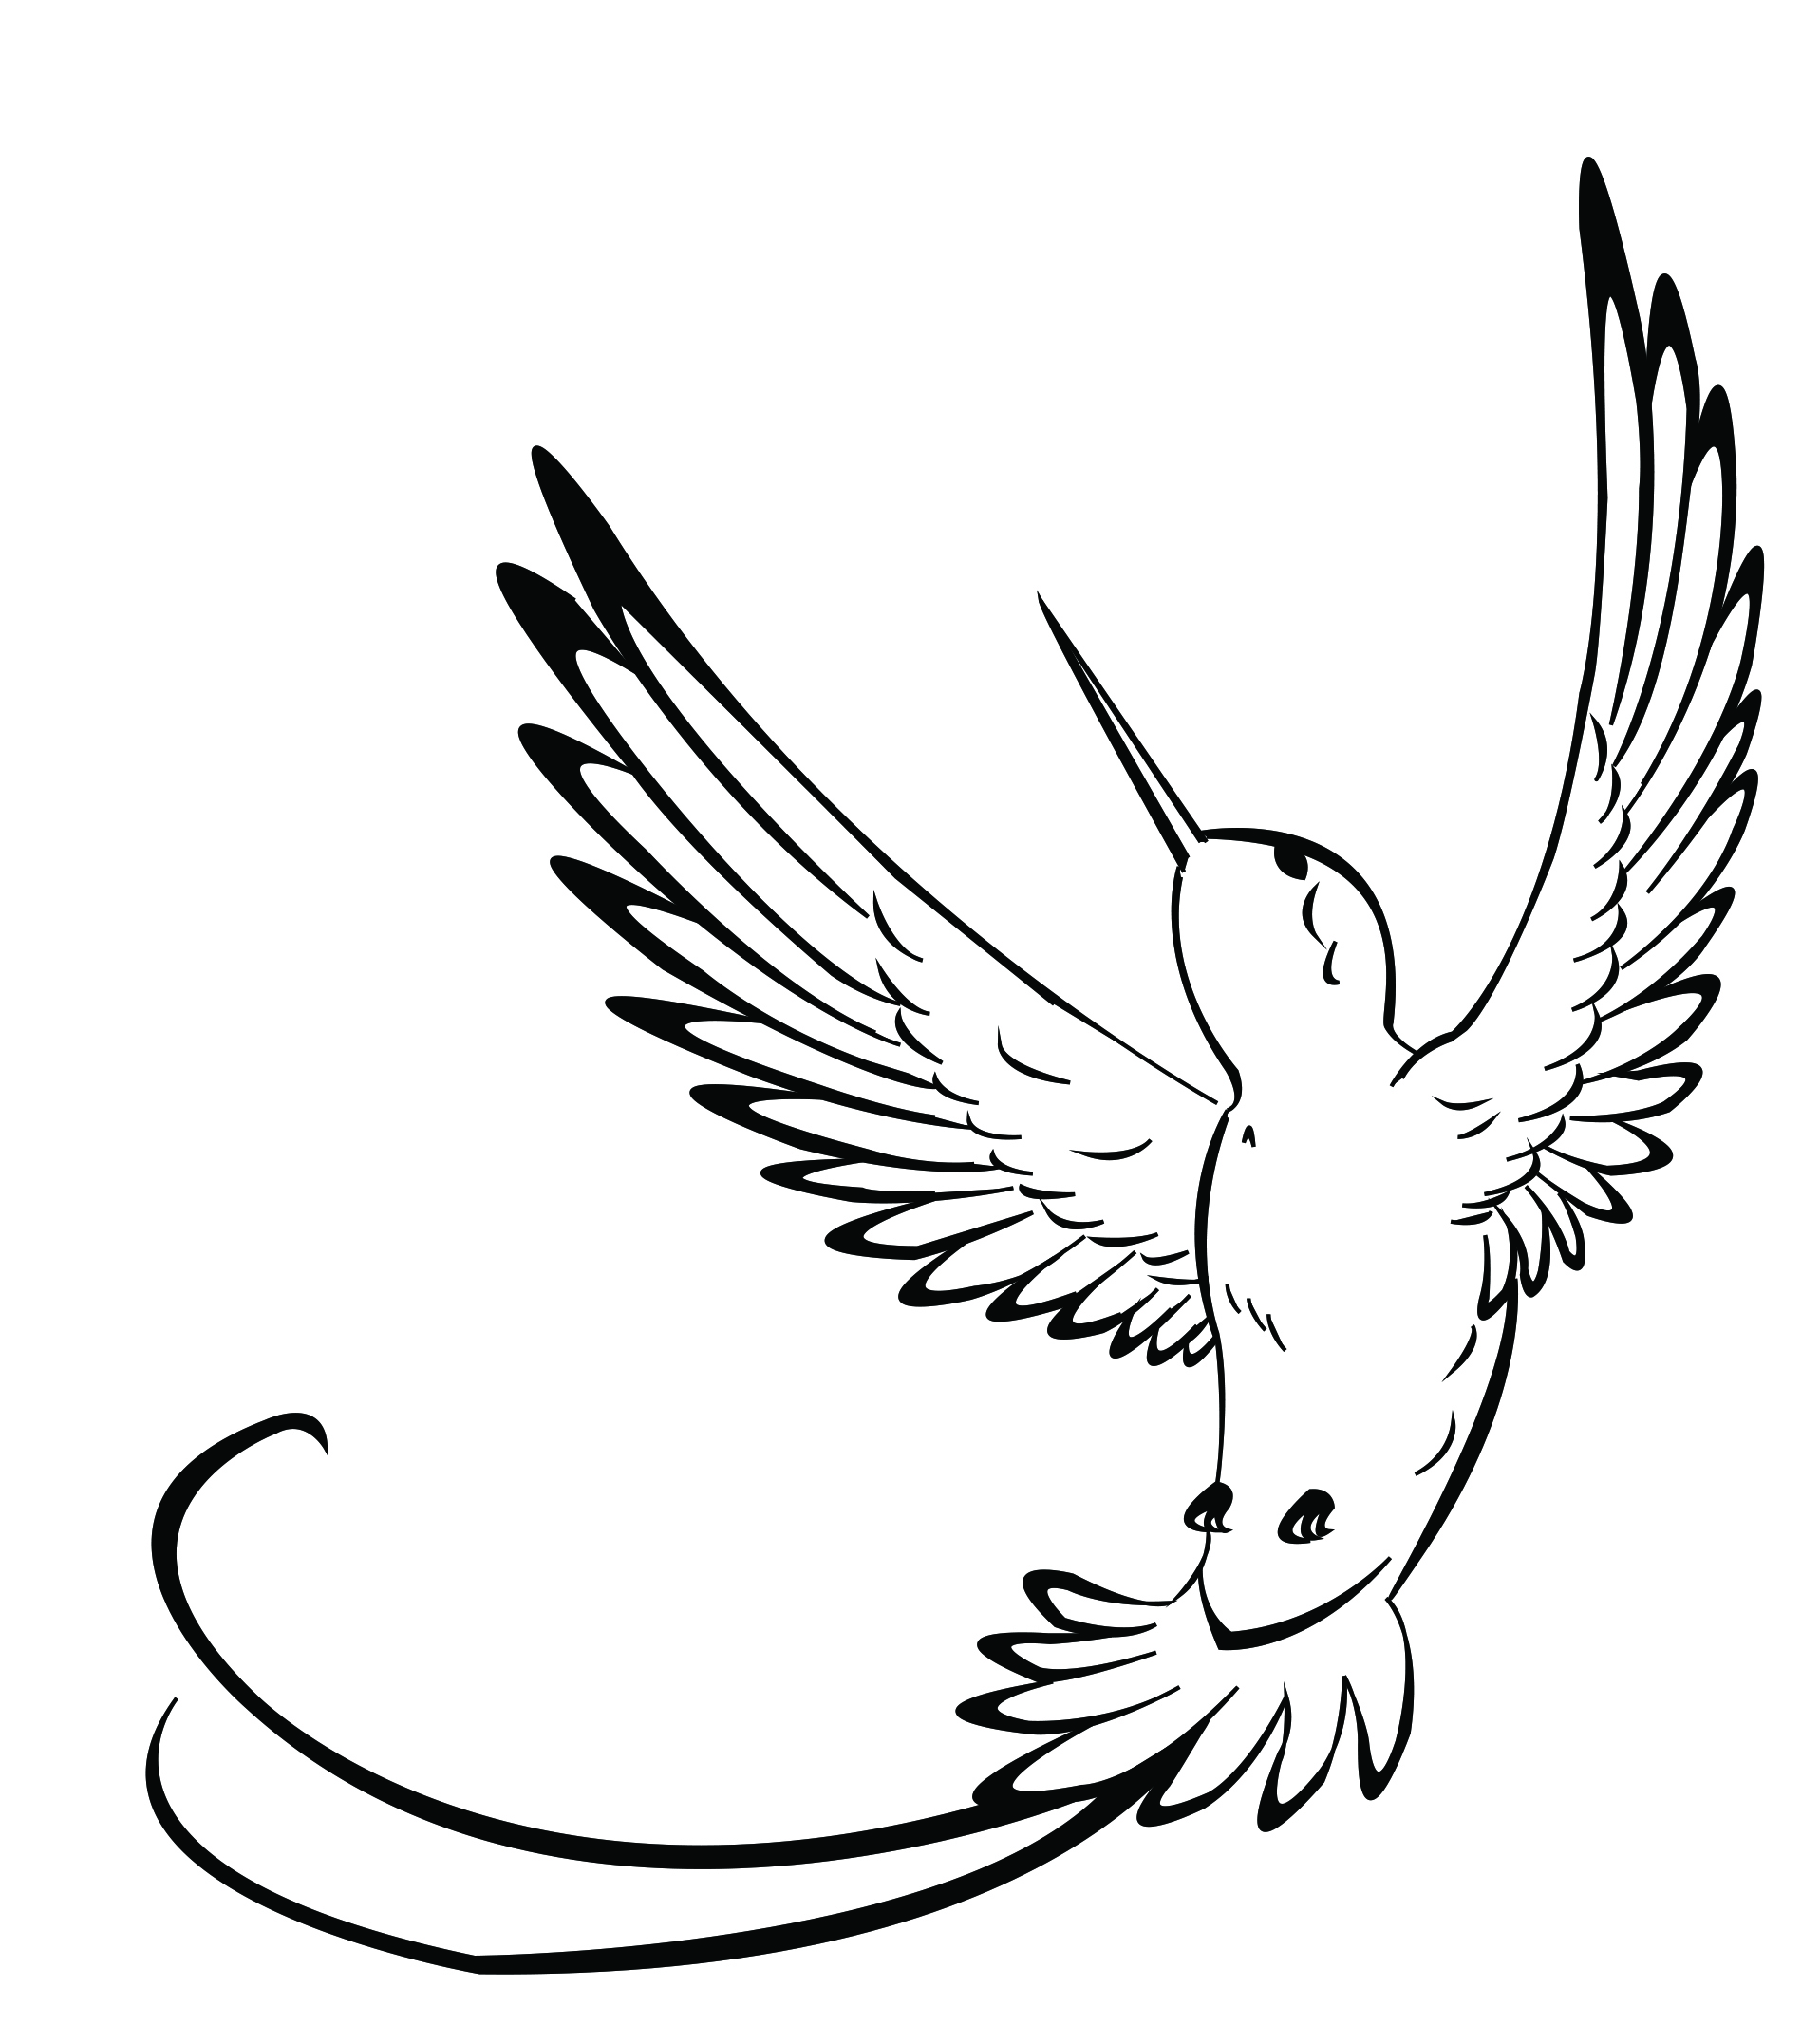 Hummingbird Outline With Hummingbird Clipart Outline : Hummingbird.